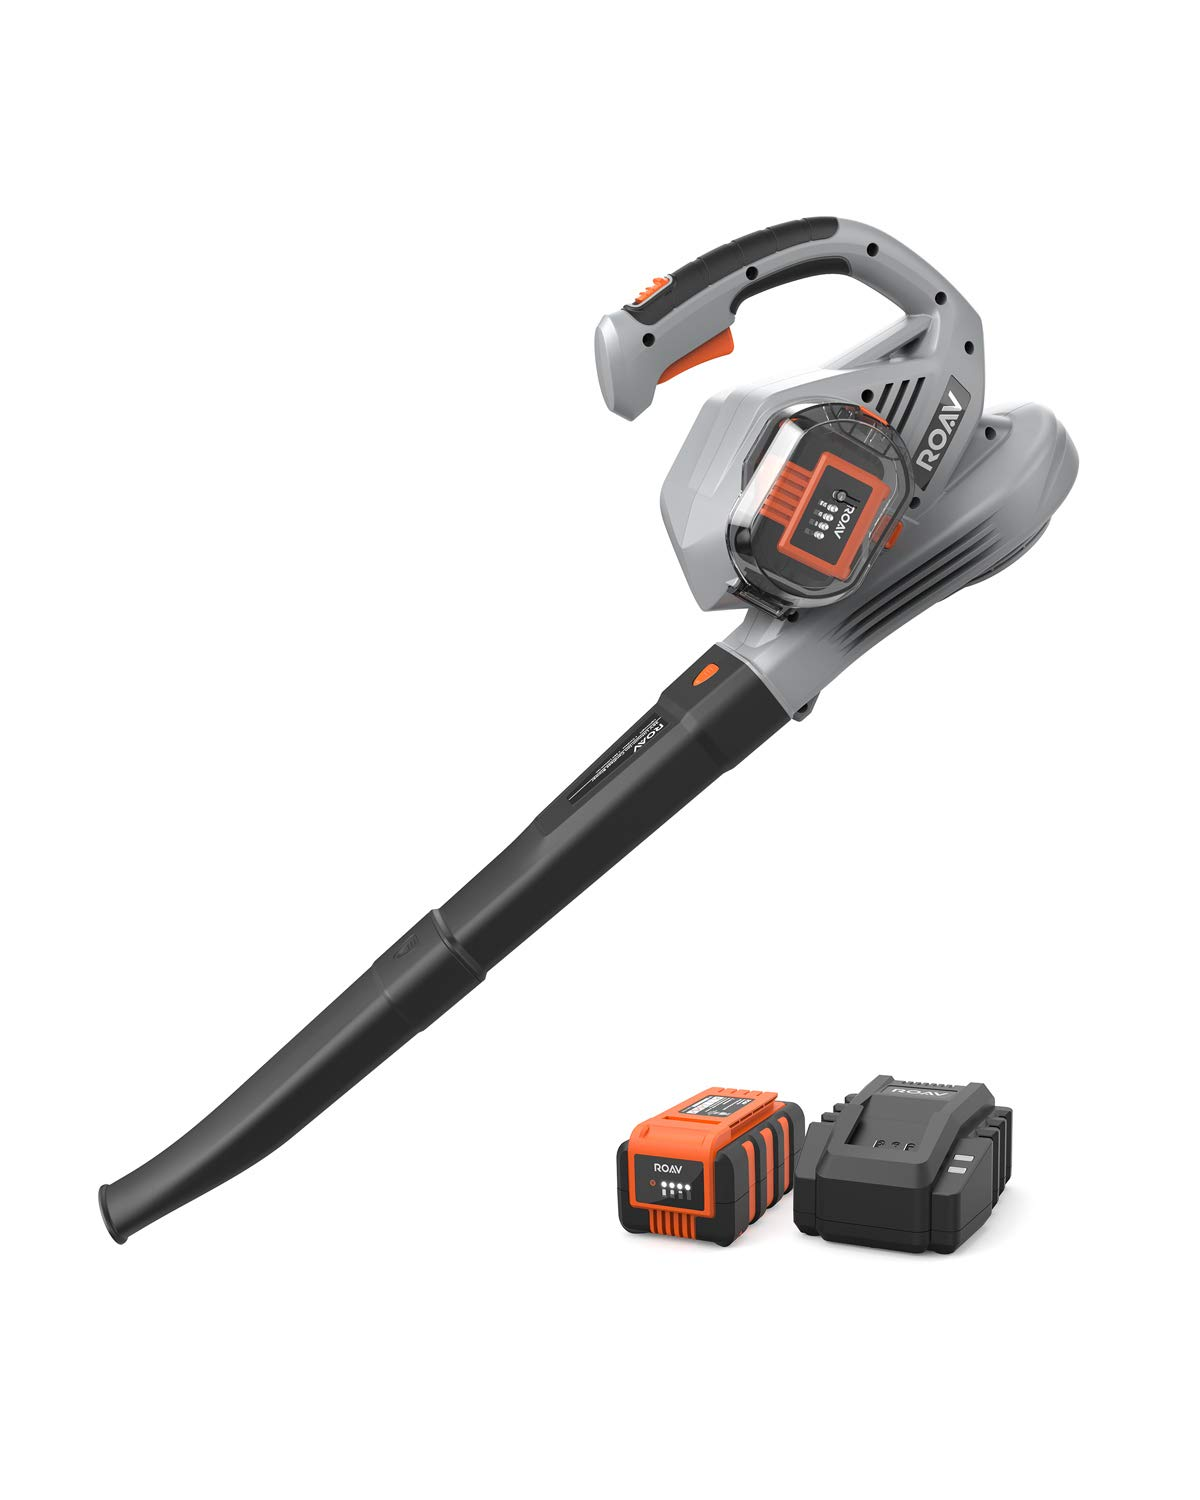 Anker Roav 36V Cordless Leaf Blower, 220 MPH Max Speed, Lock Switch, 3.0 AH Battery and Charger Included by ROAV